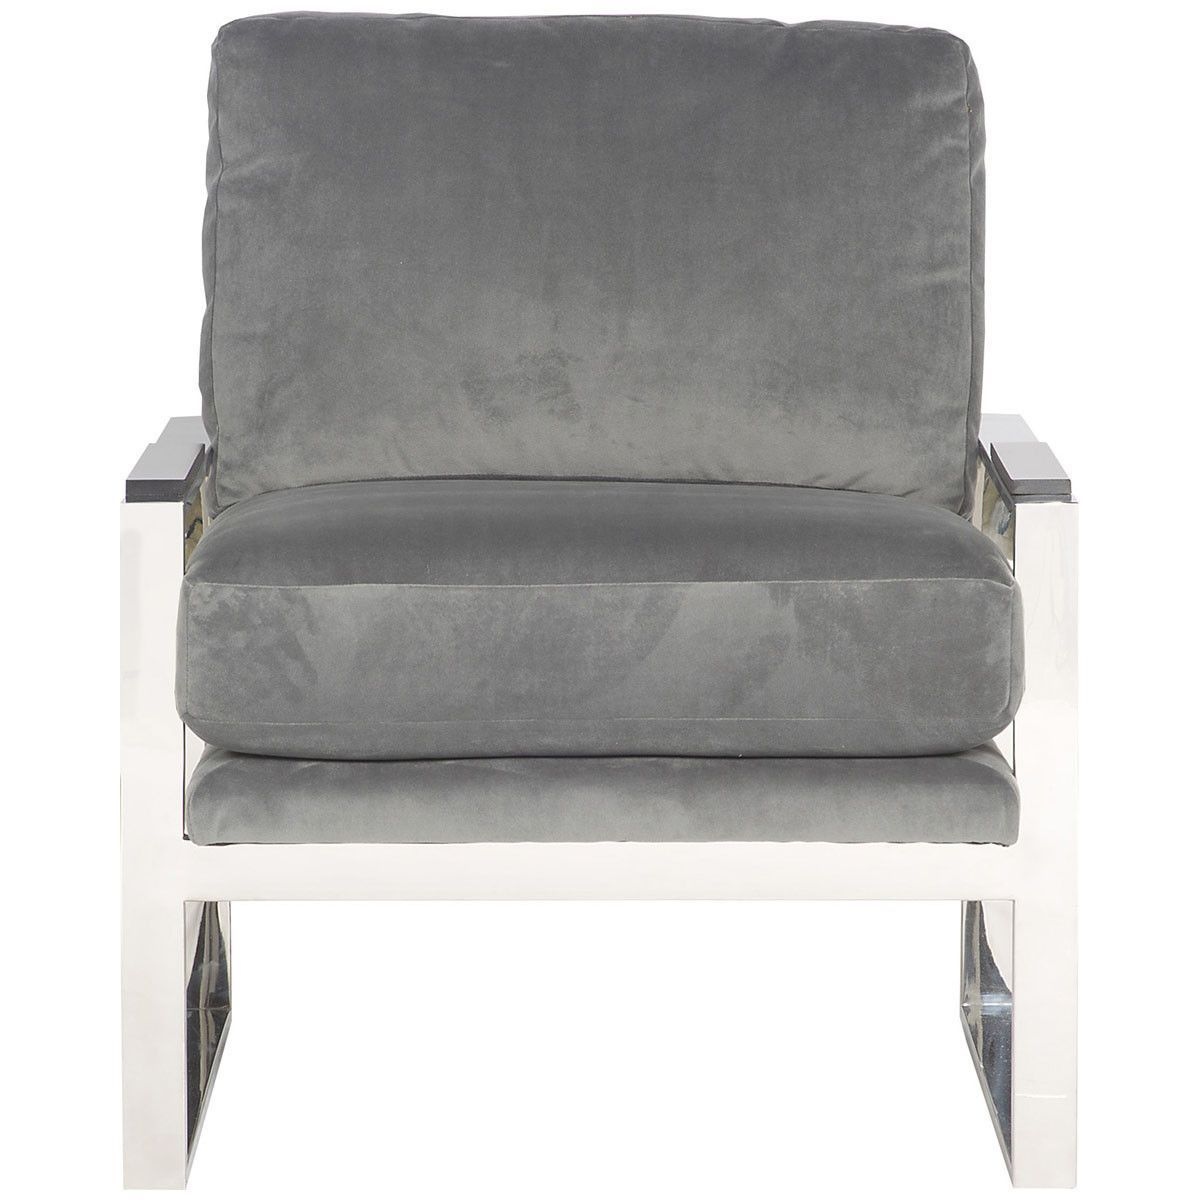 Shop For Vanguard Soho Grand Chair, And Other Living Room Chairs At Vanguard  Furniture In Conover, NC.